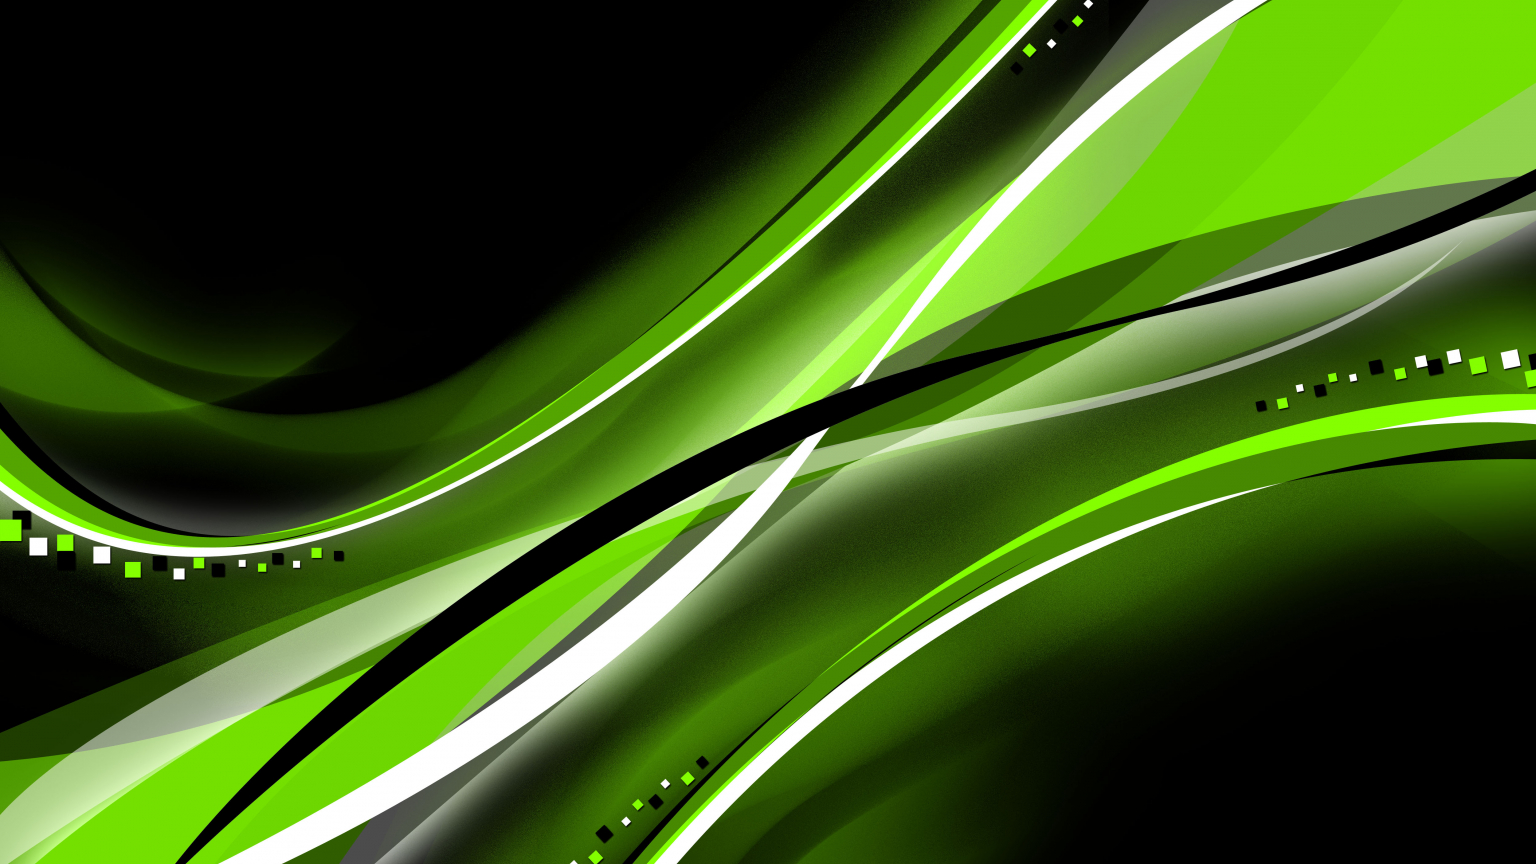 Free download abstract green and black background ...